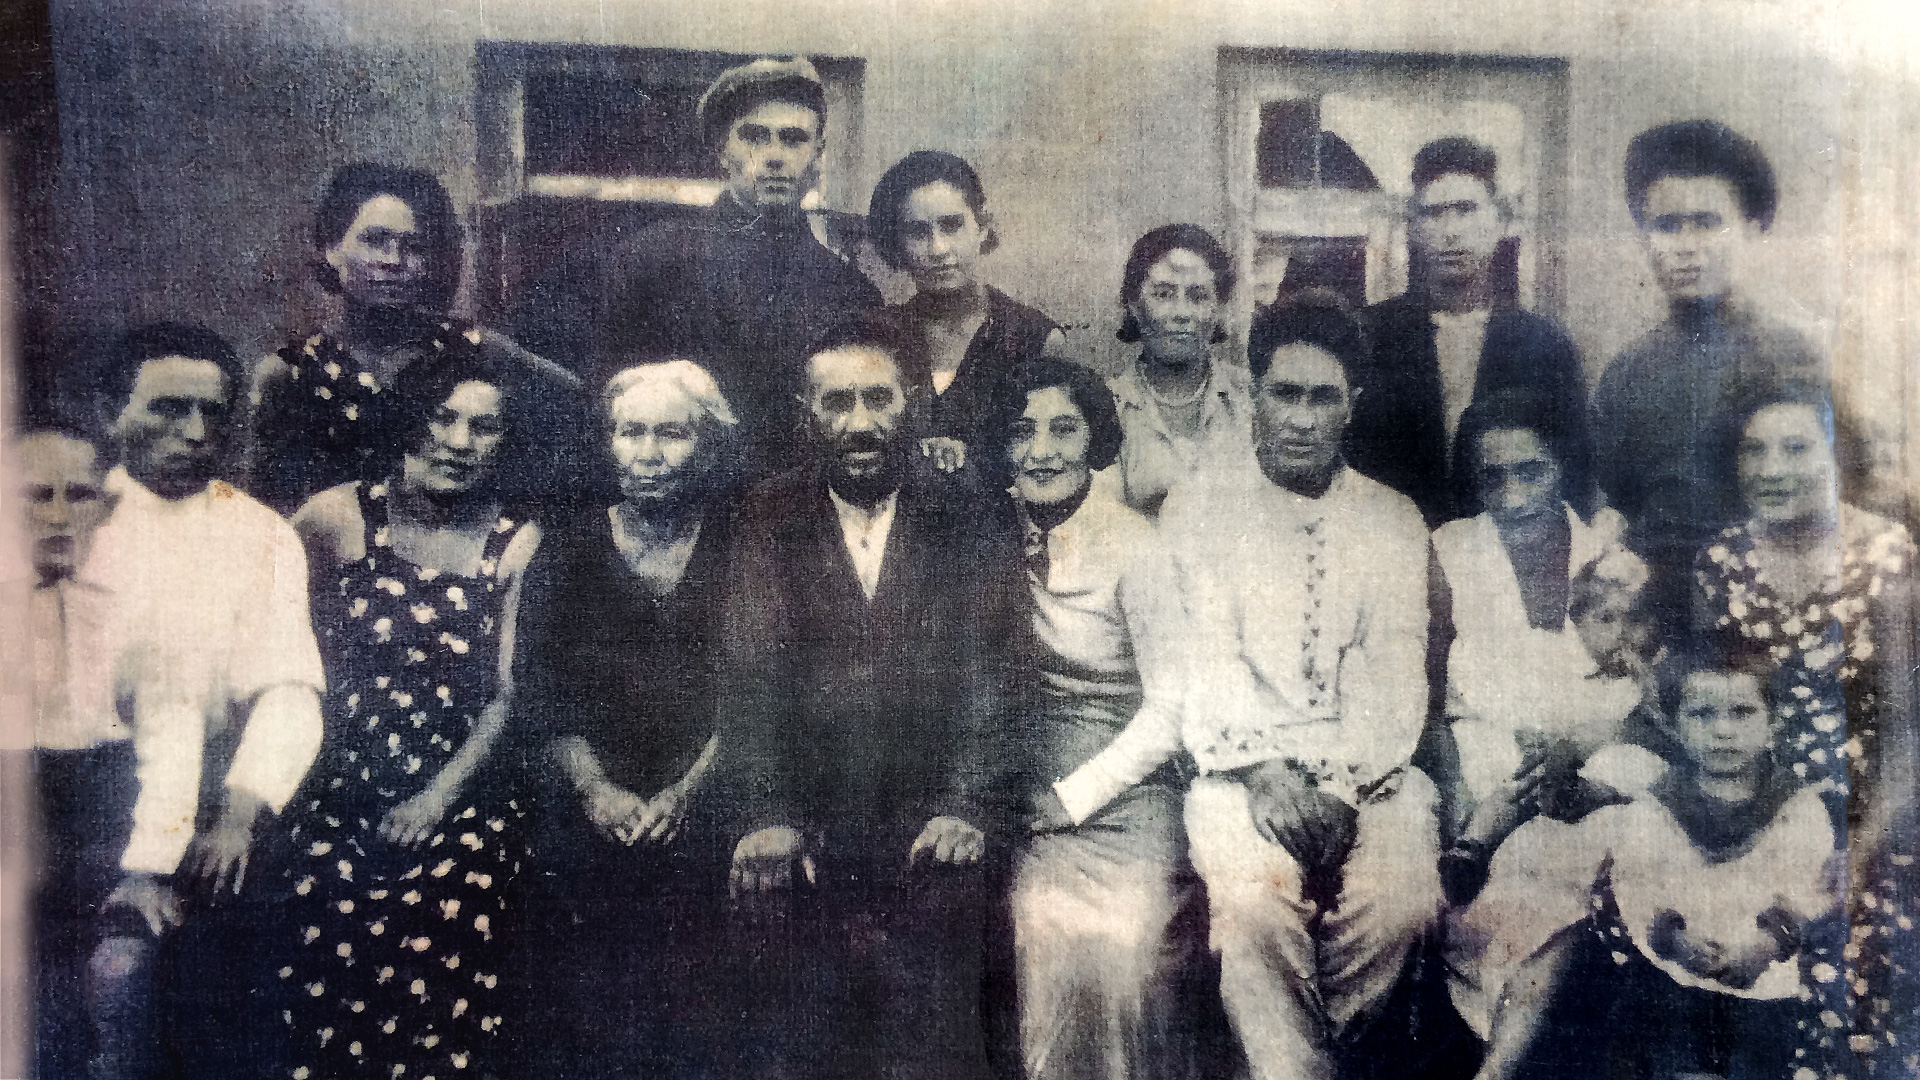 Family murdered in the Holocaust